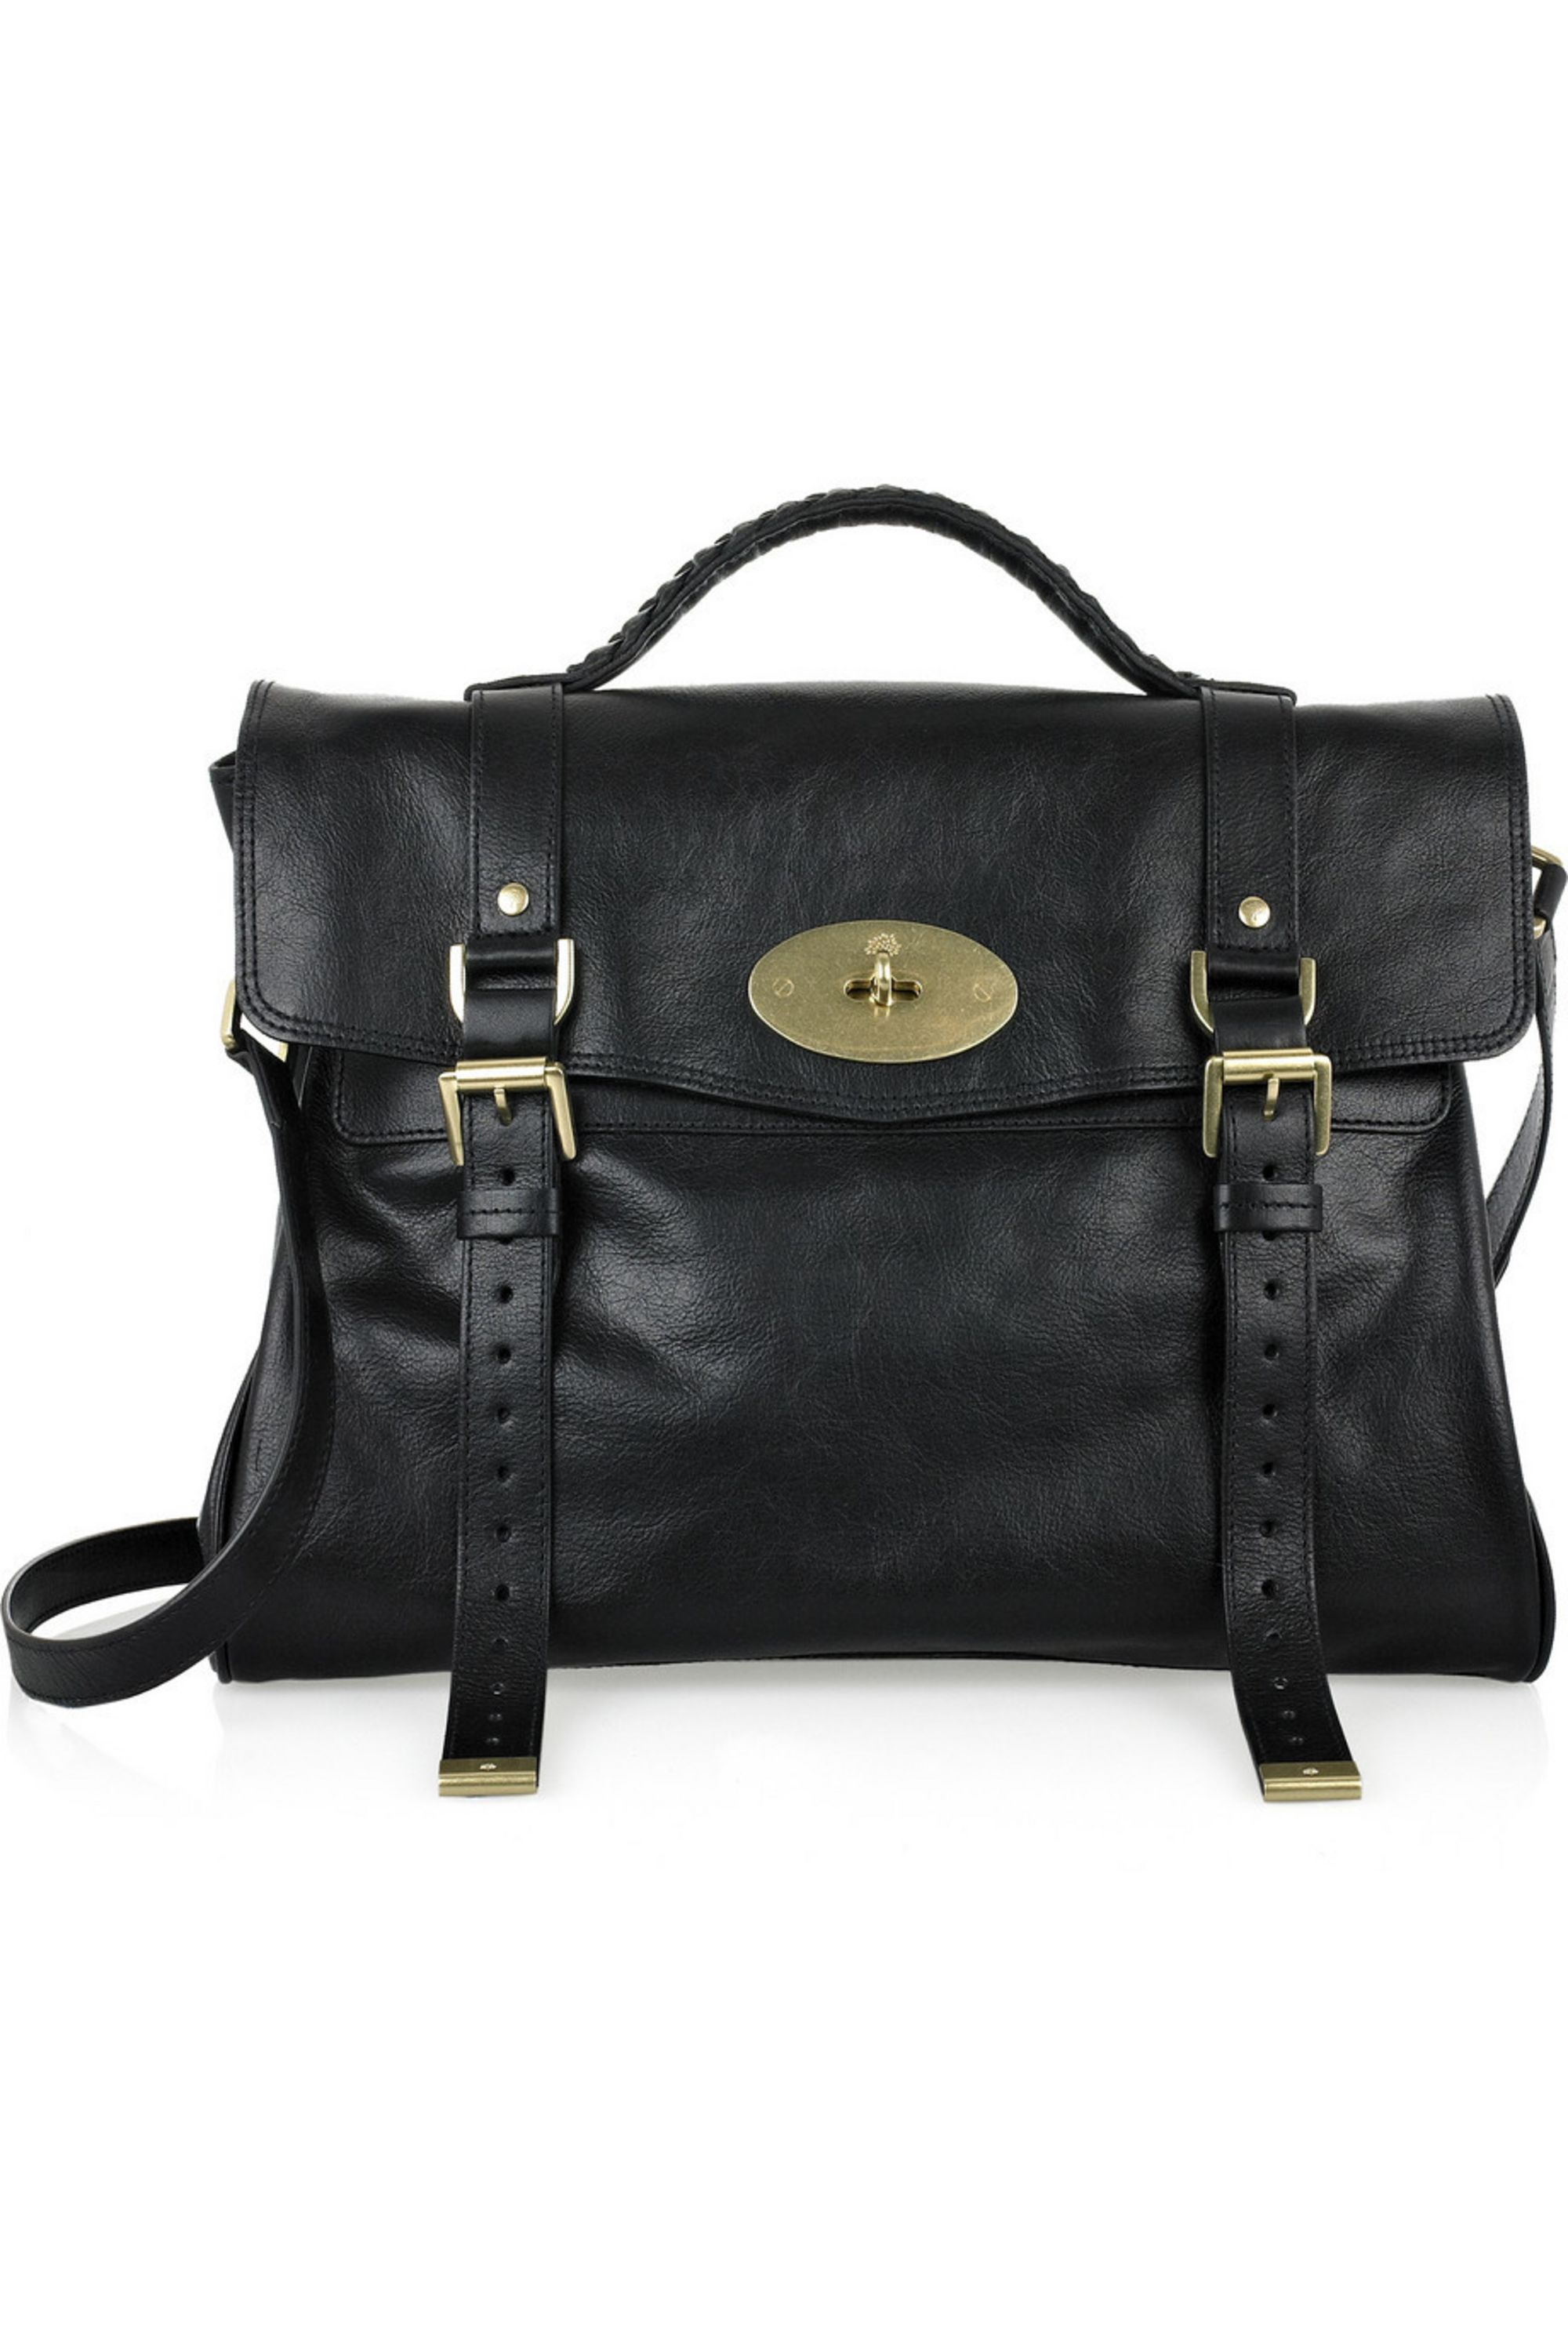 Mulberry The Oversized Alexa leather bag